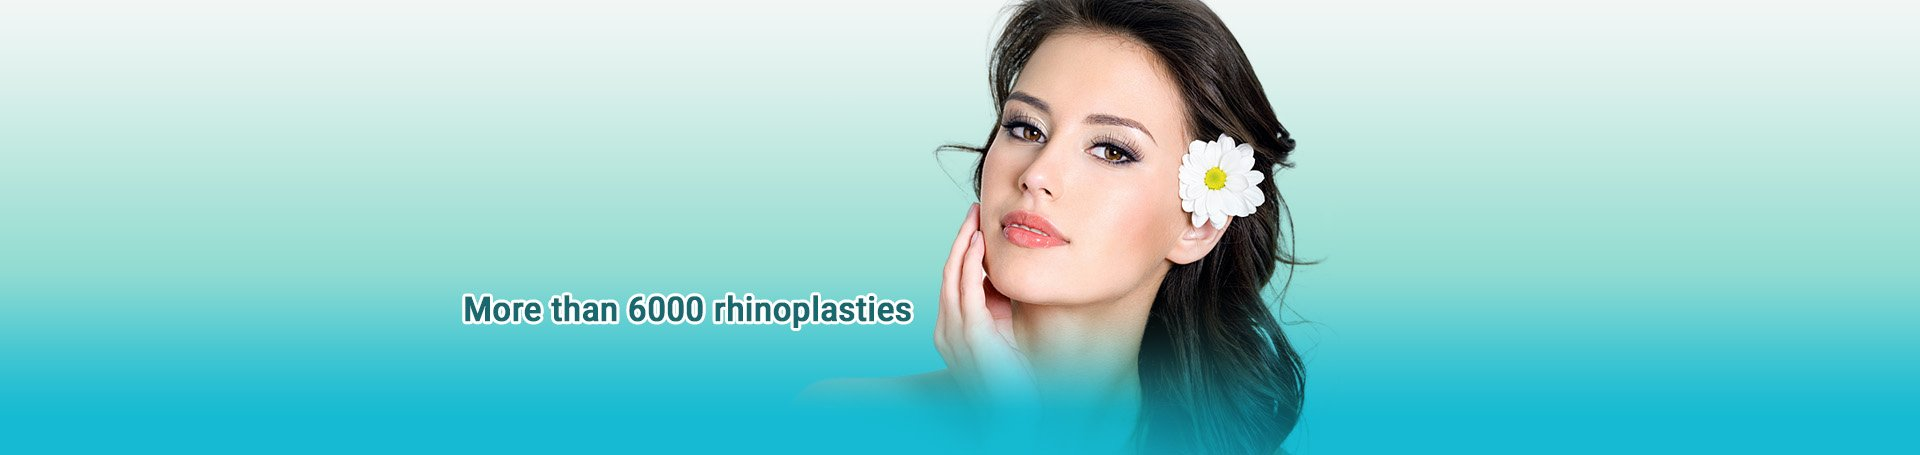 More than 6000 rhinoplasties